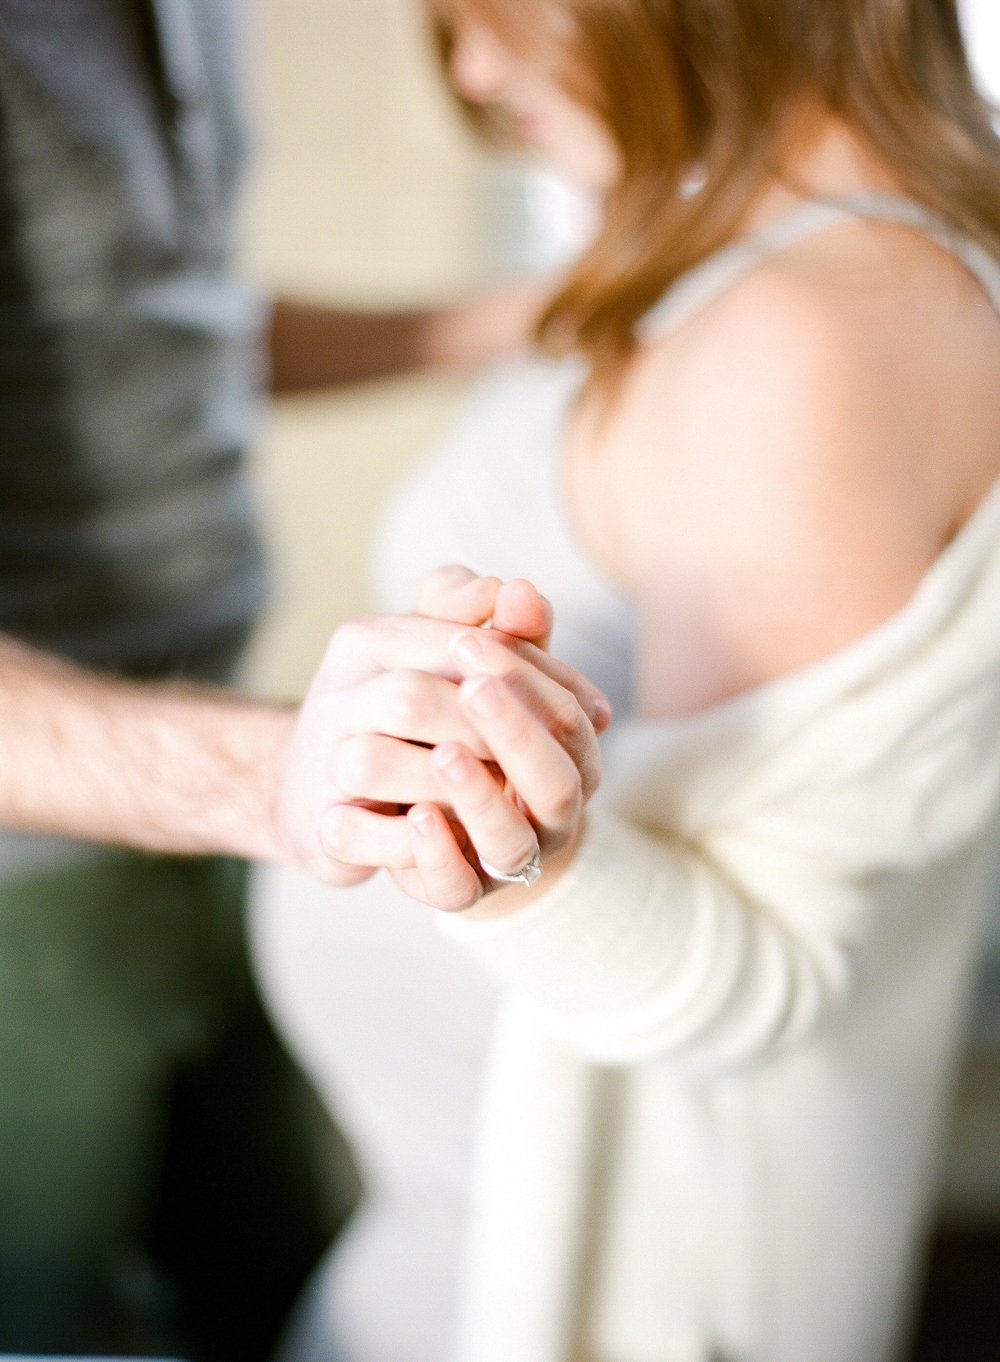 man and pregnant woman in white sweater holding hands